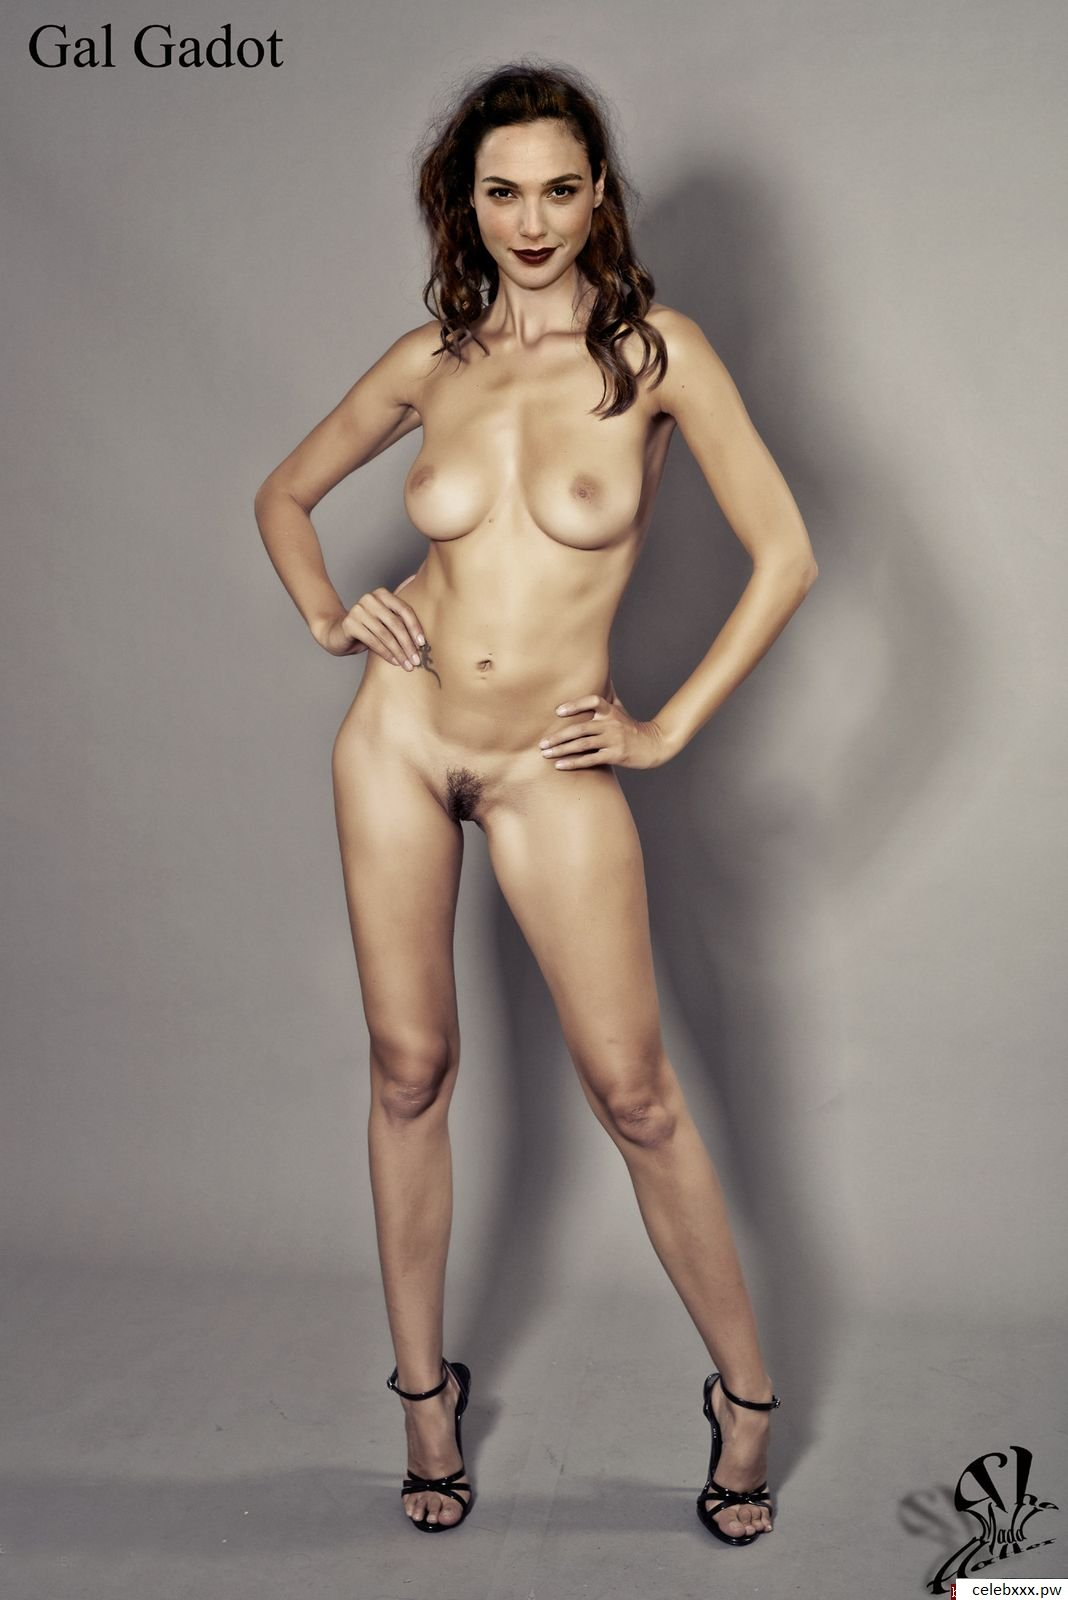 Gal Gadot real topless pictures – Celebrity leaked nude ...